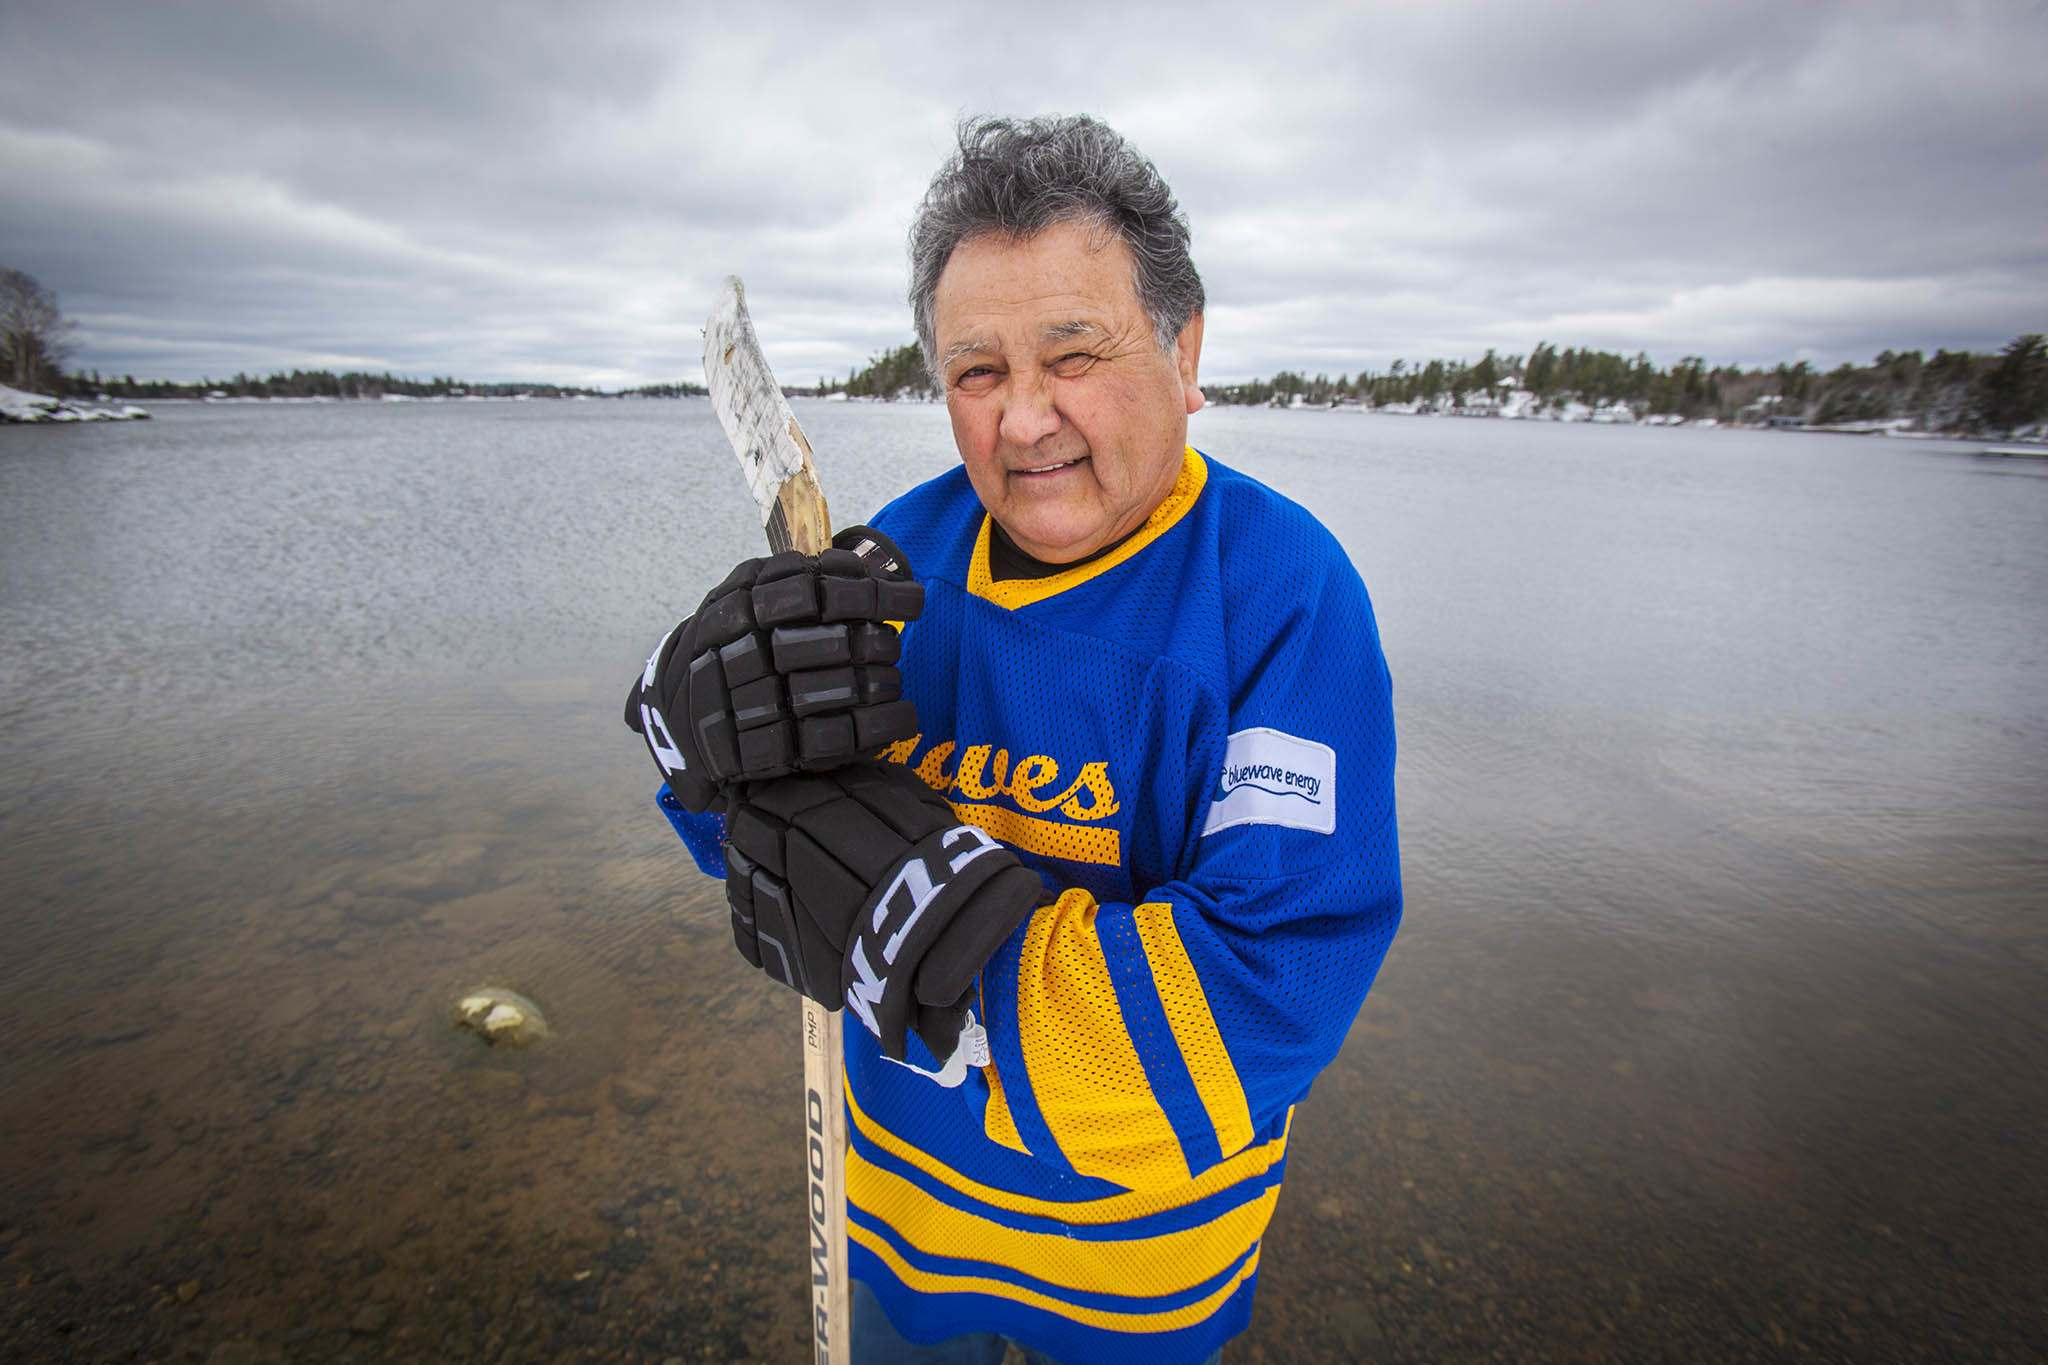 TOM THOMSON / WINNIPEG FREE PRESS</p><p>George Kakeyway was captain of team in early 1960&#39;s. He later became chief of Rat Portage First Nations.</p>